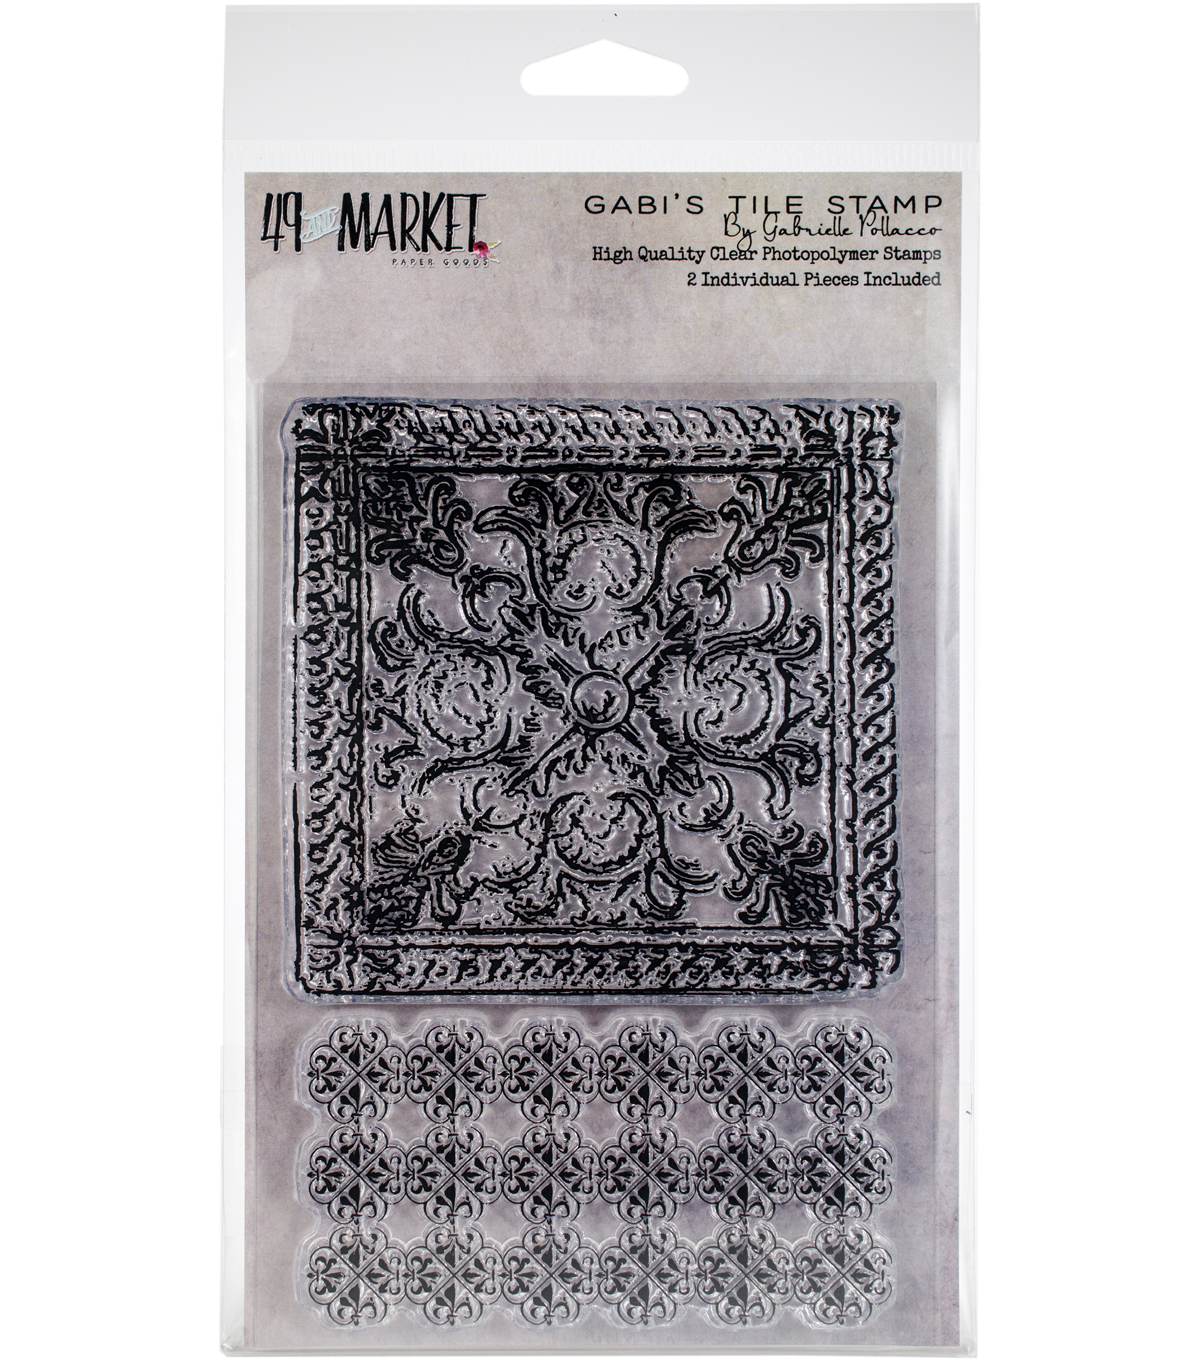 49 And Market Gabrielle Pollacco Clear Photopolymer Stamp-Gabi\u0027s Tile